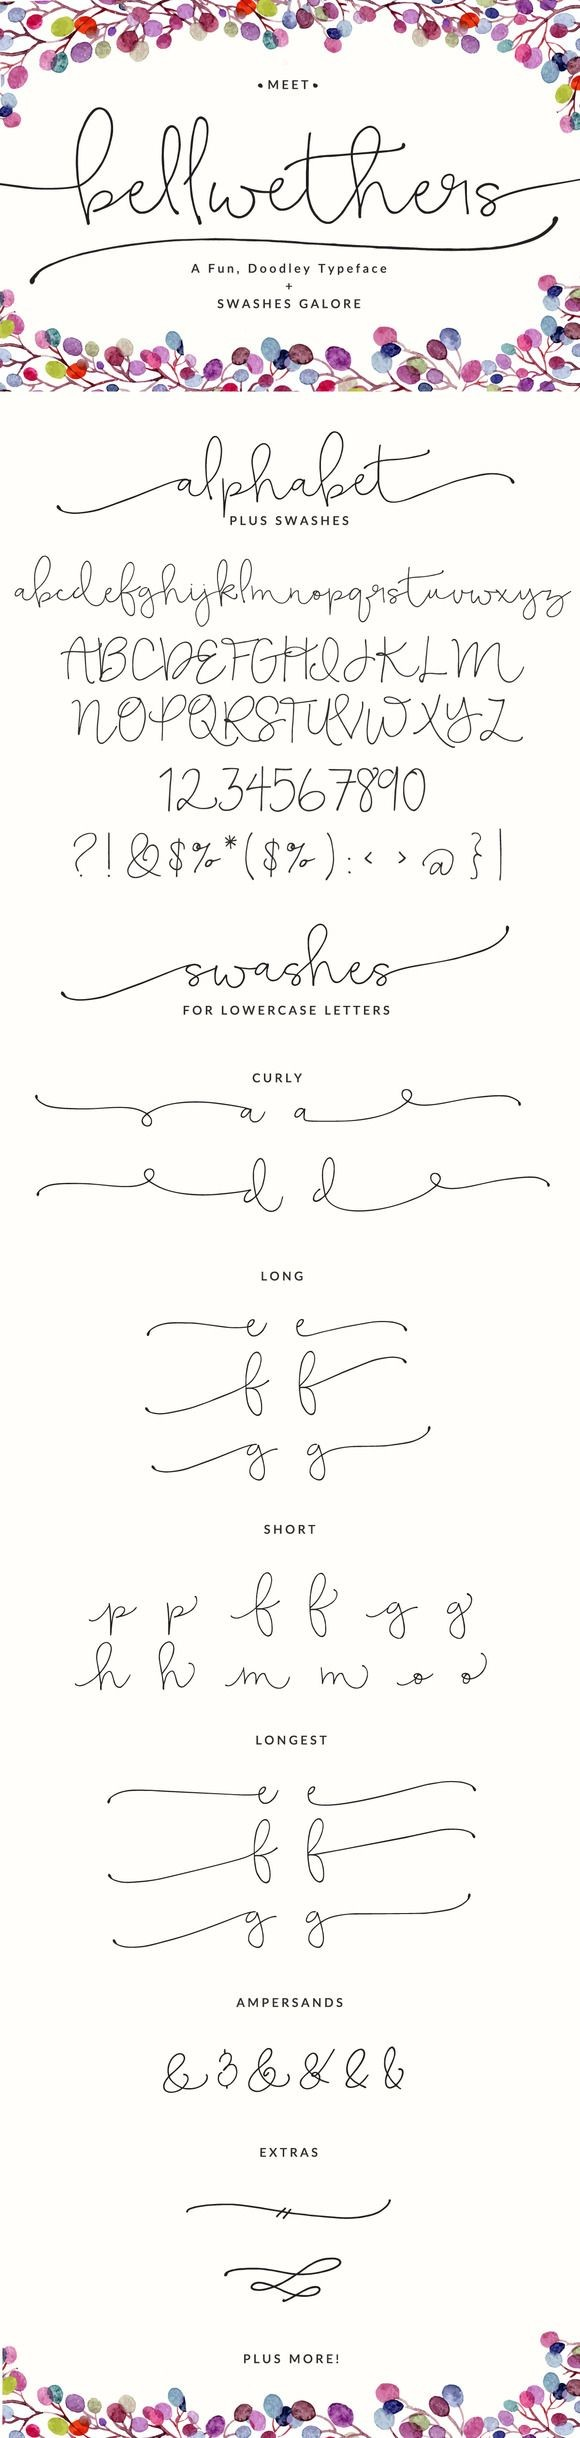 Meet the latest Angie Makes font... Bellwethers. T...